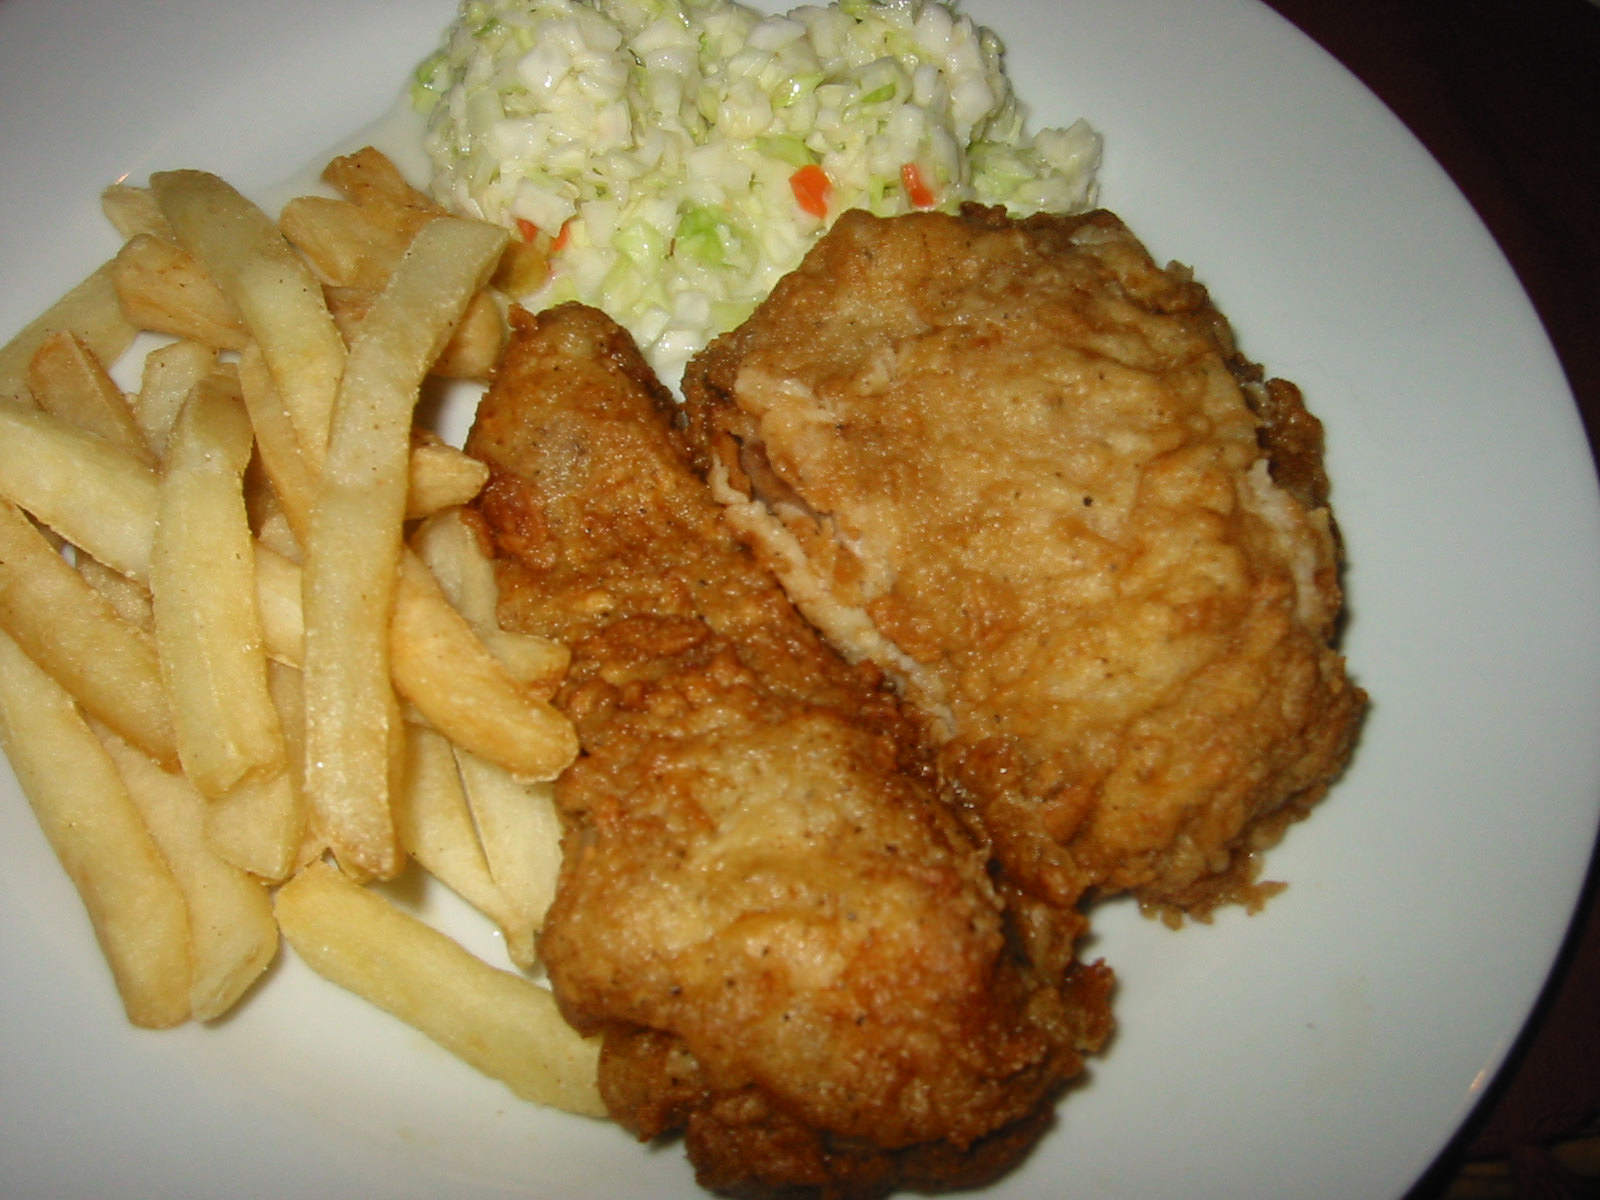 KFC, coleslaw and chips